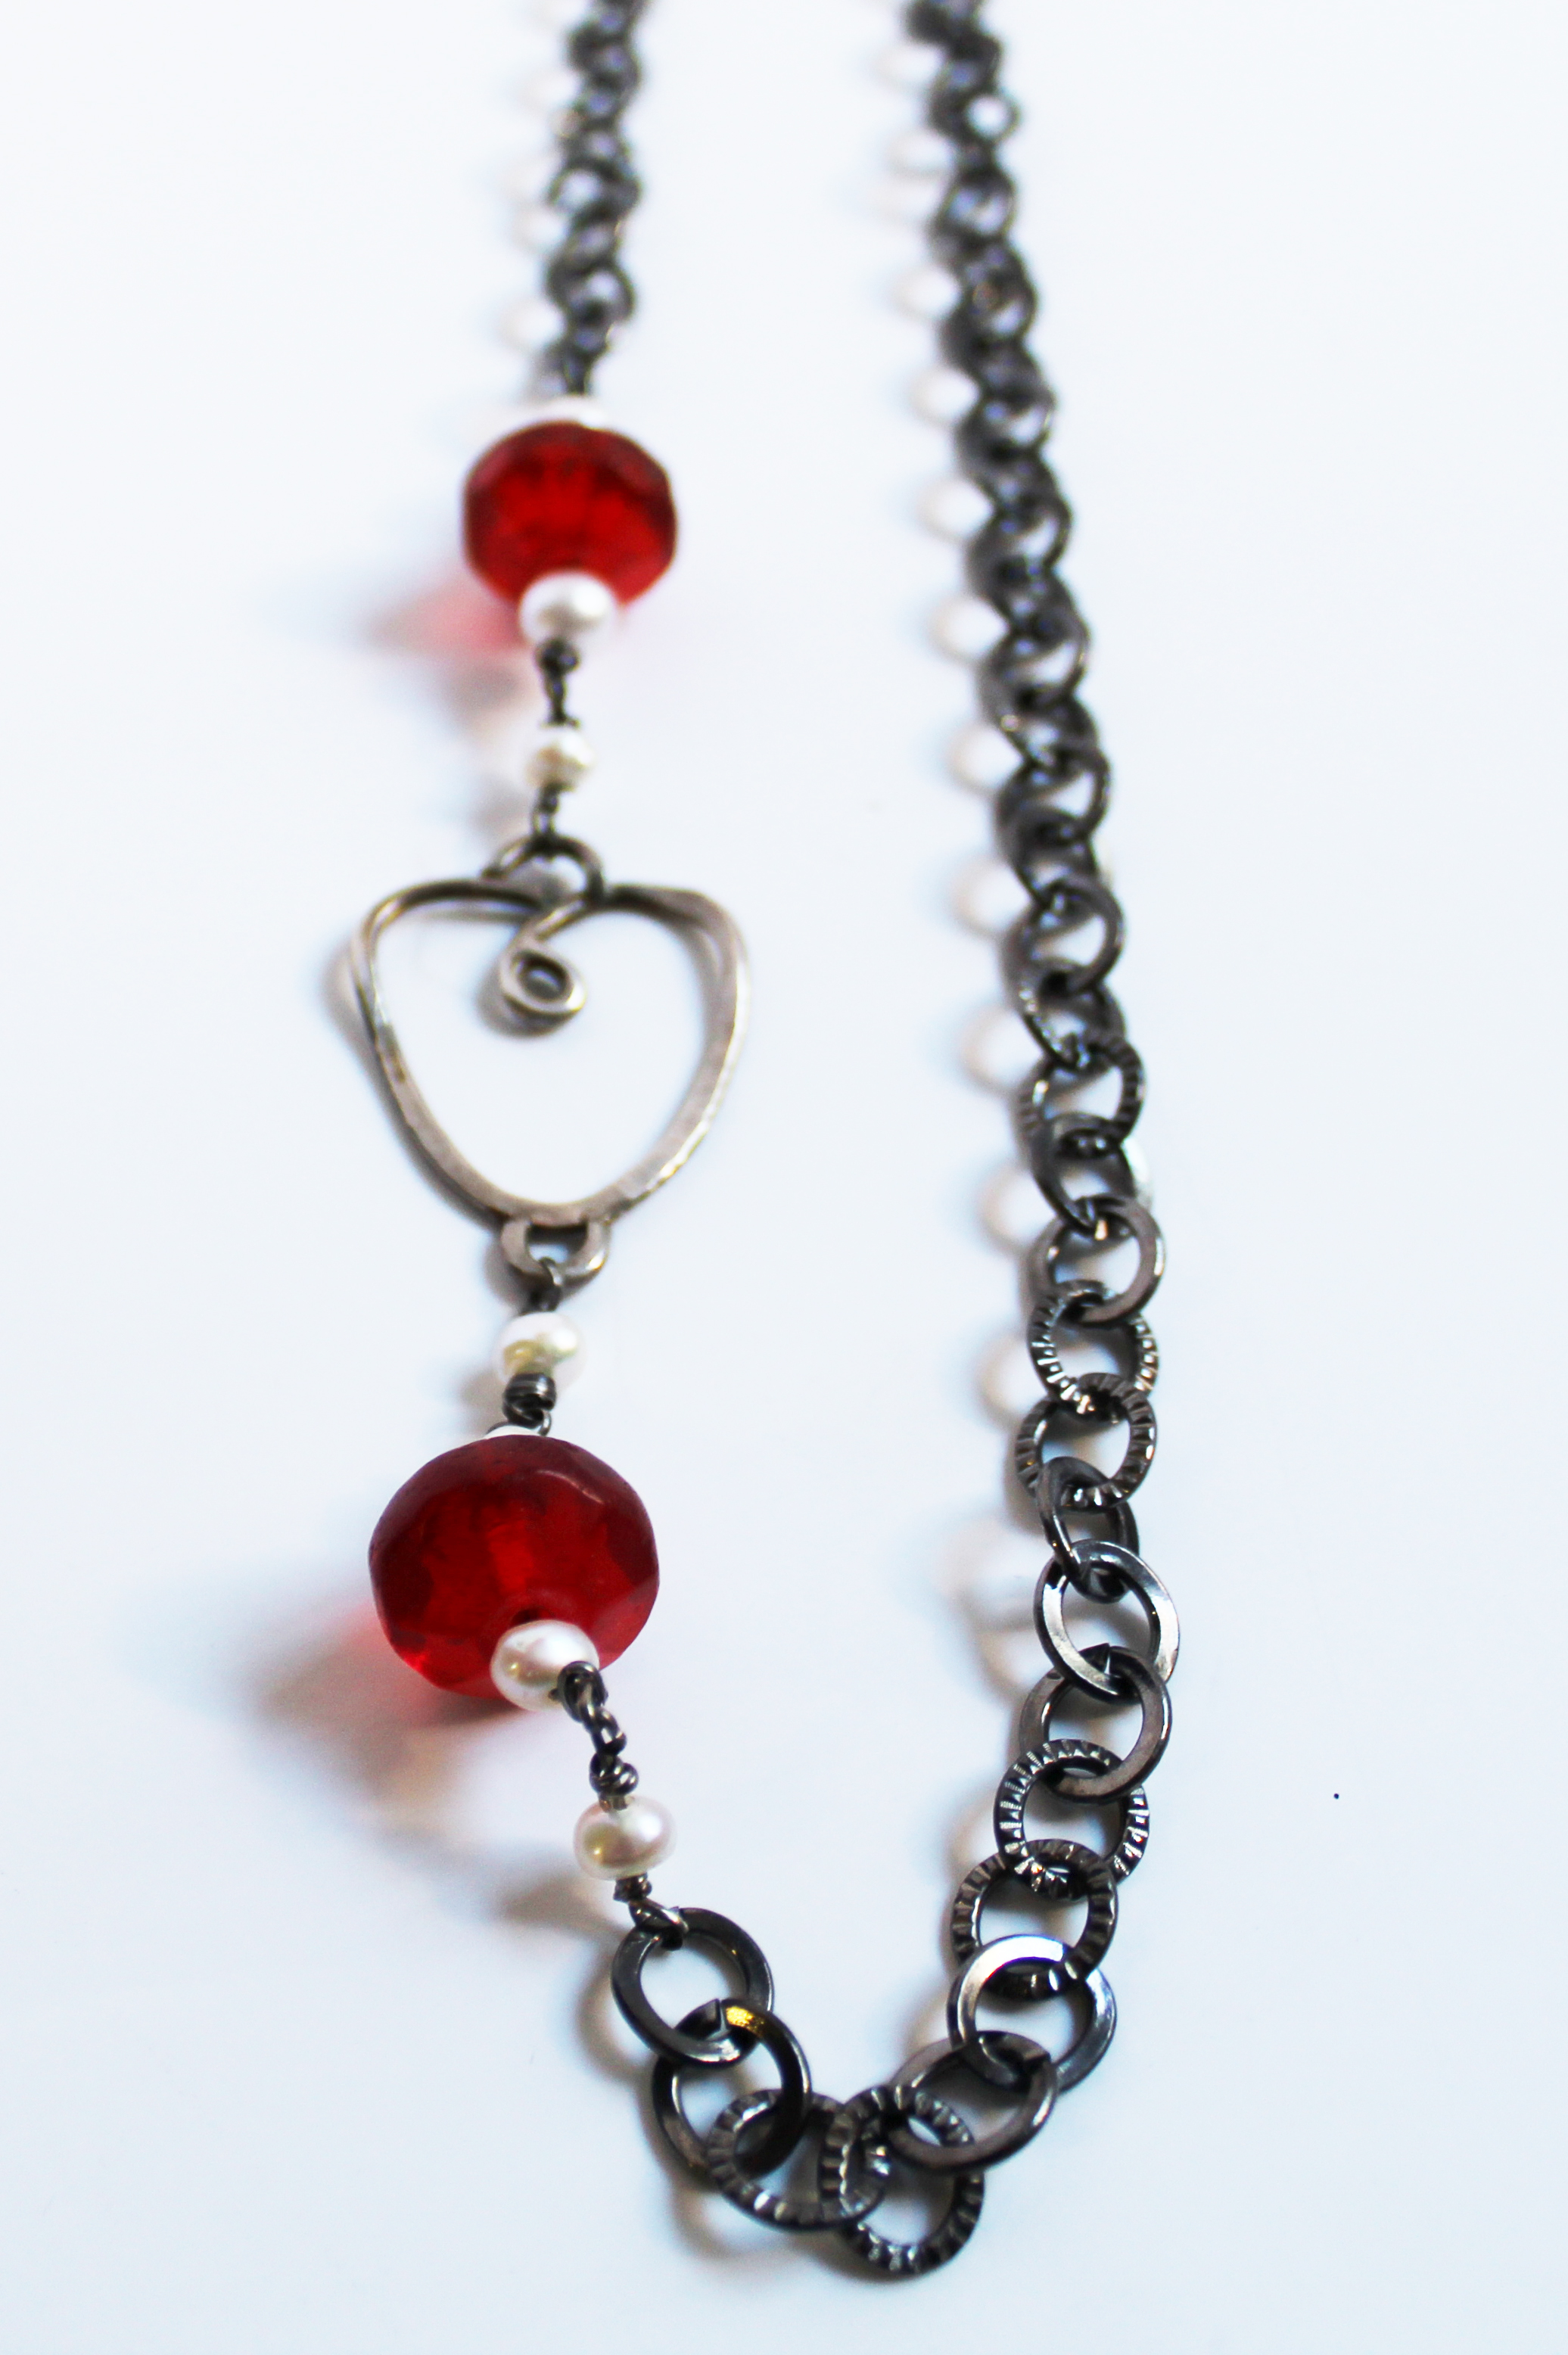 Glass Beads and Pearls Necklace